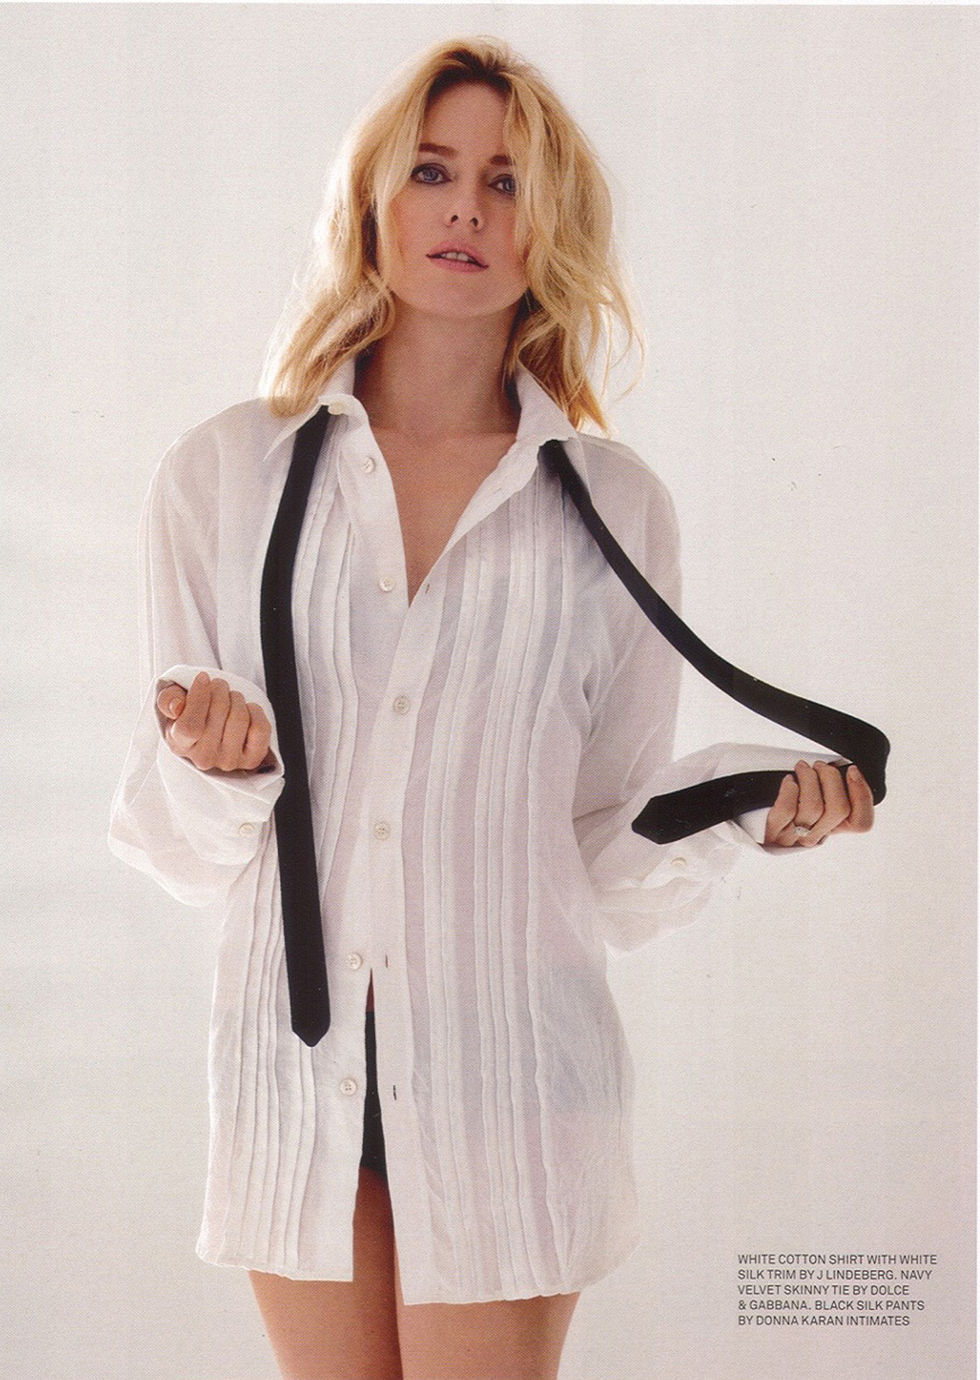 naomi-watts-esquire-magazine-uk-march-2008-01